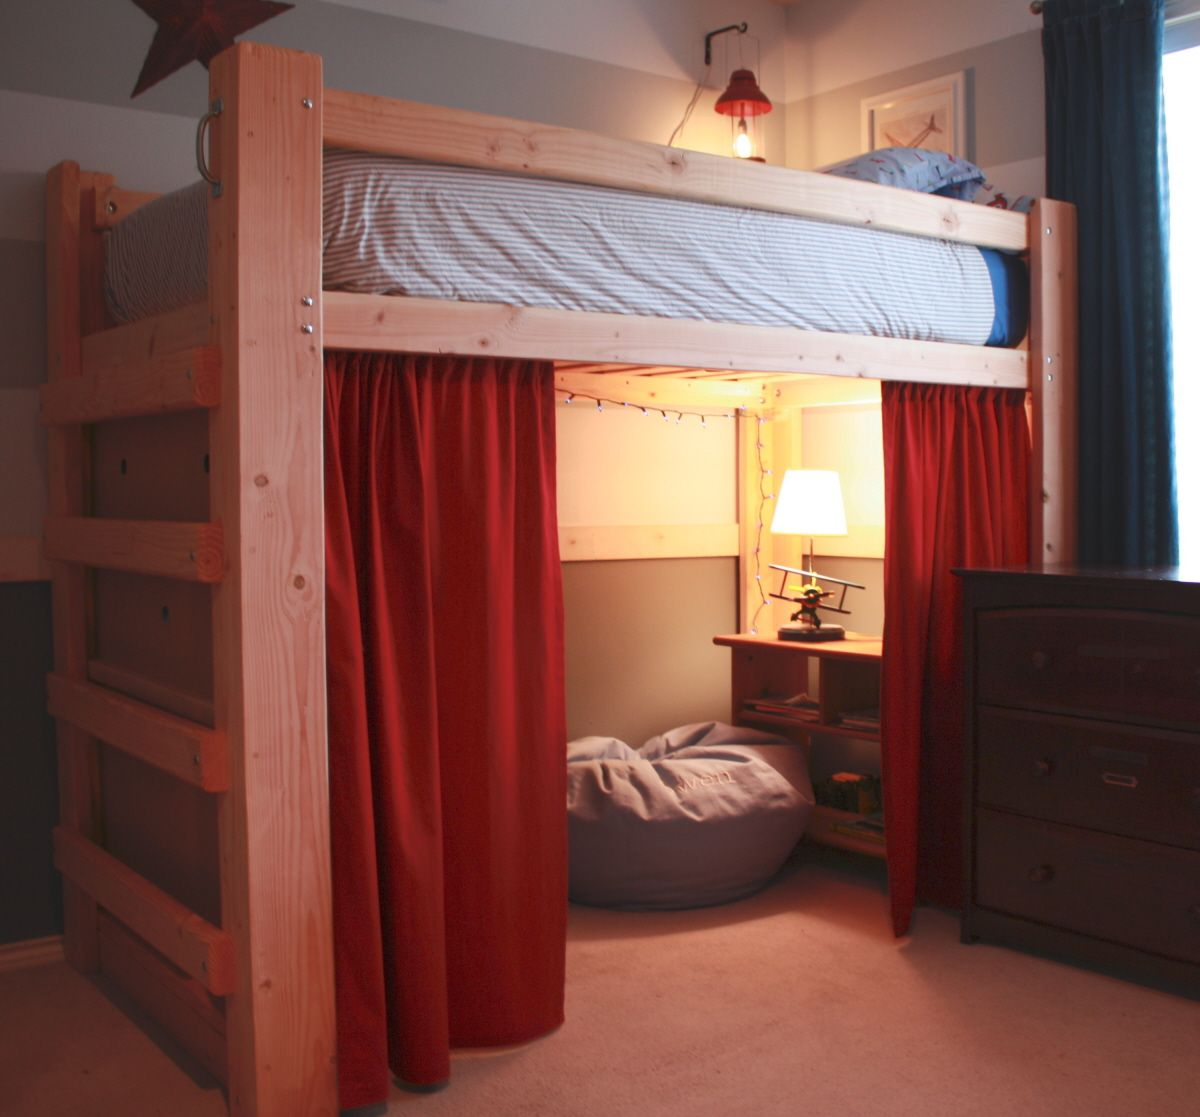 Loft bed ideas for small spaces   Kids Forts  Bedrooms  Pinterest  Room Bedroom and Bed